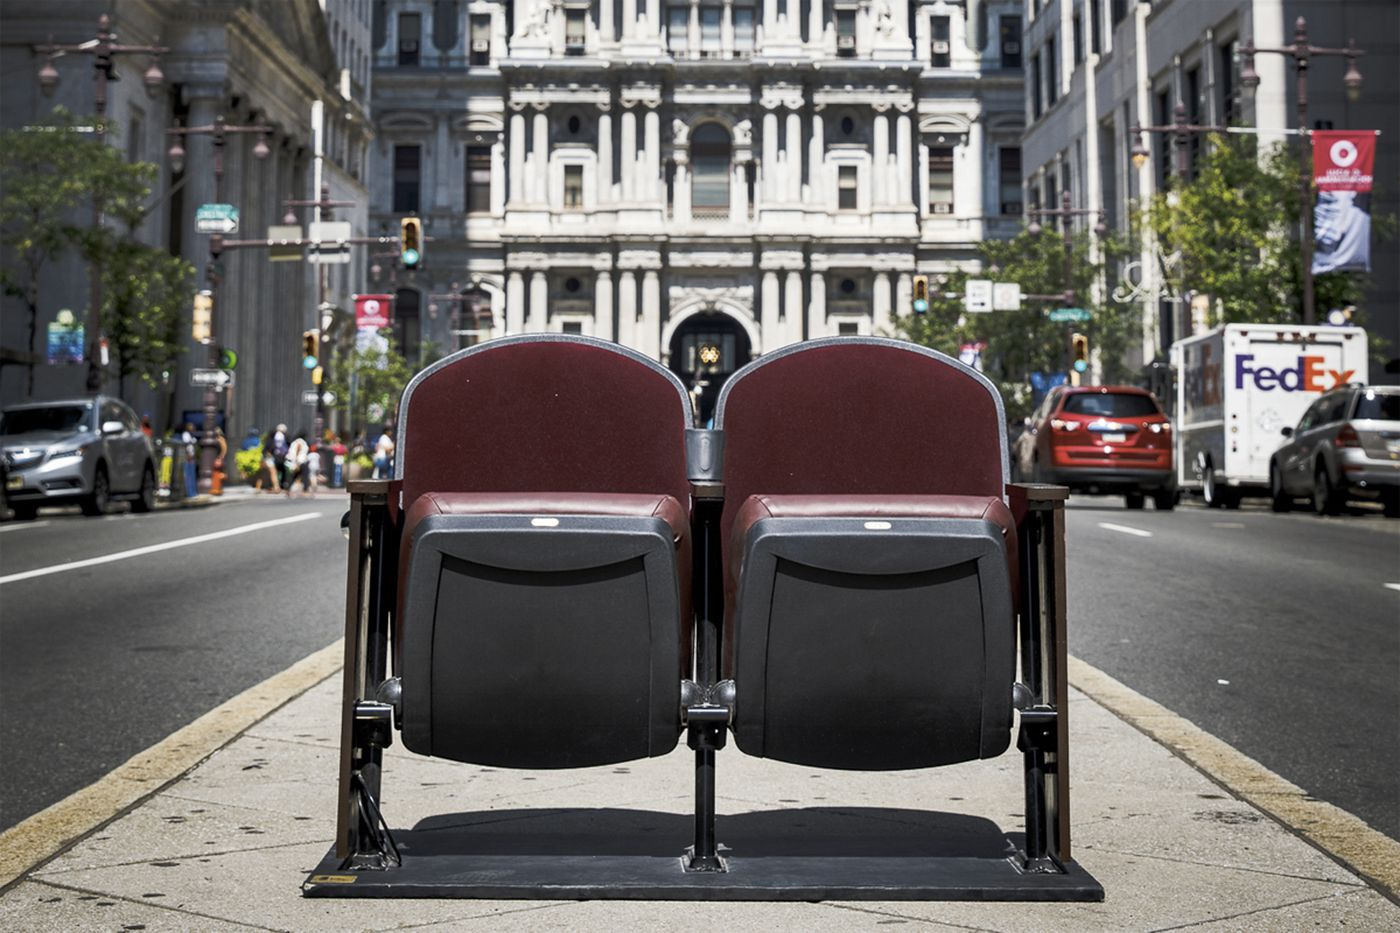 Broadway seating company will provide seats for Met Philadelphia